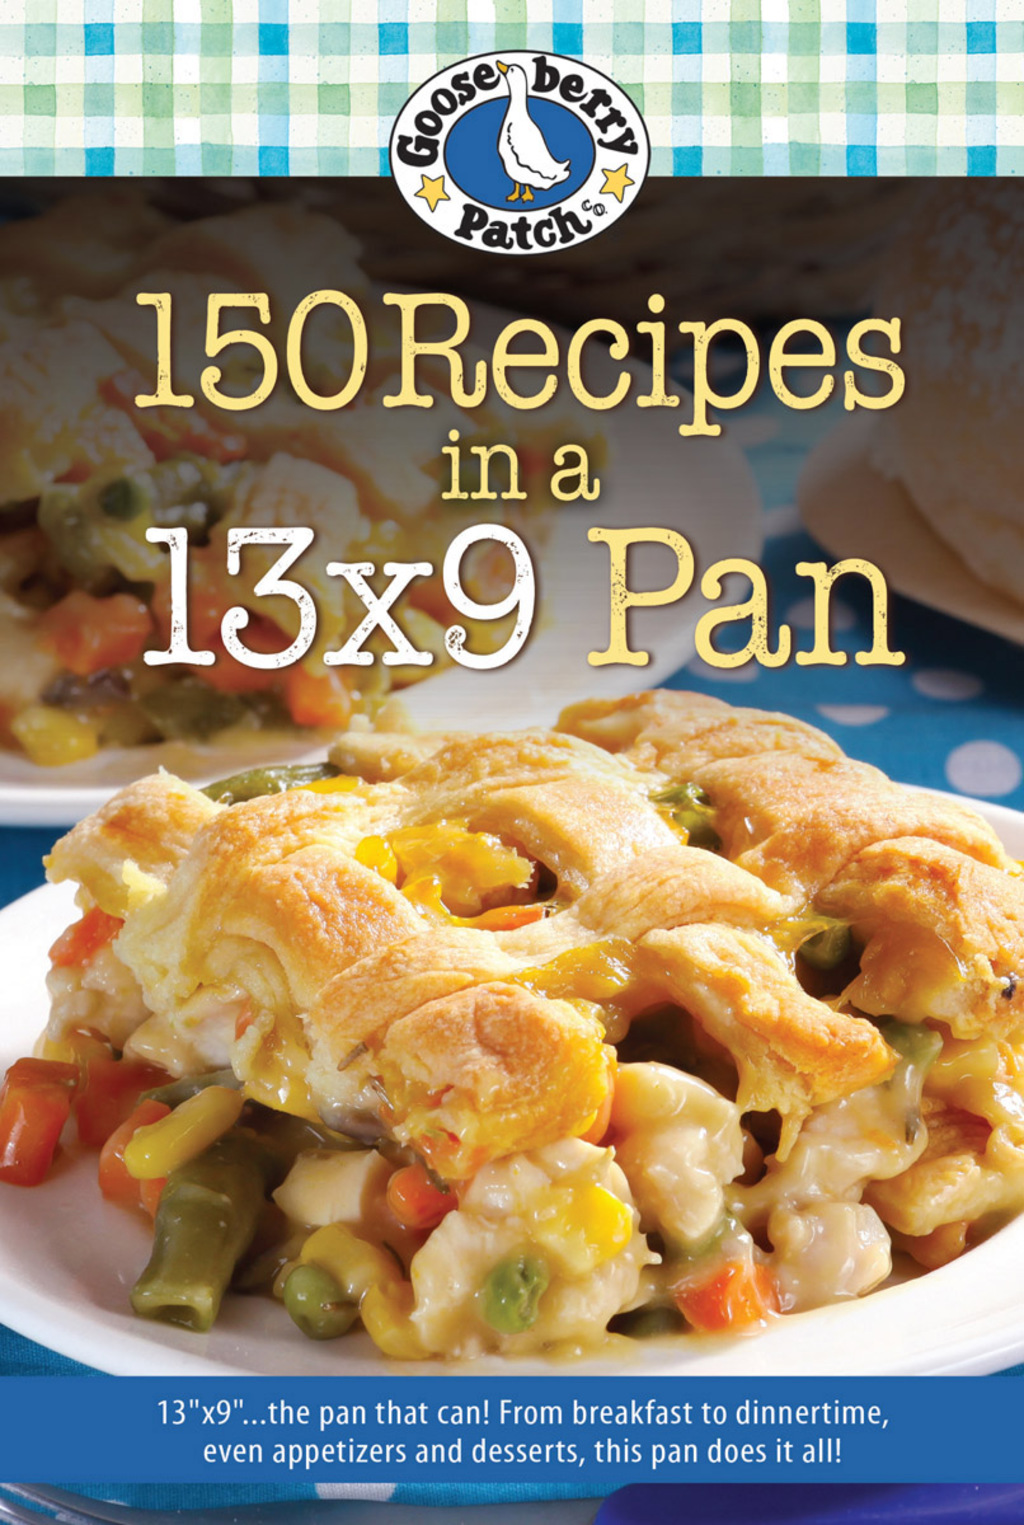 150 Recipes In A 13x9 Pan (ebook)